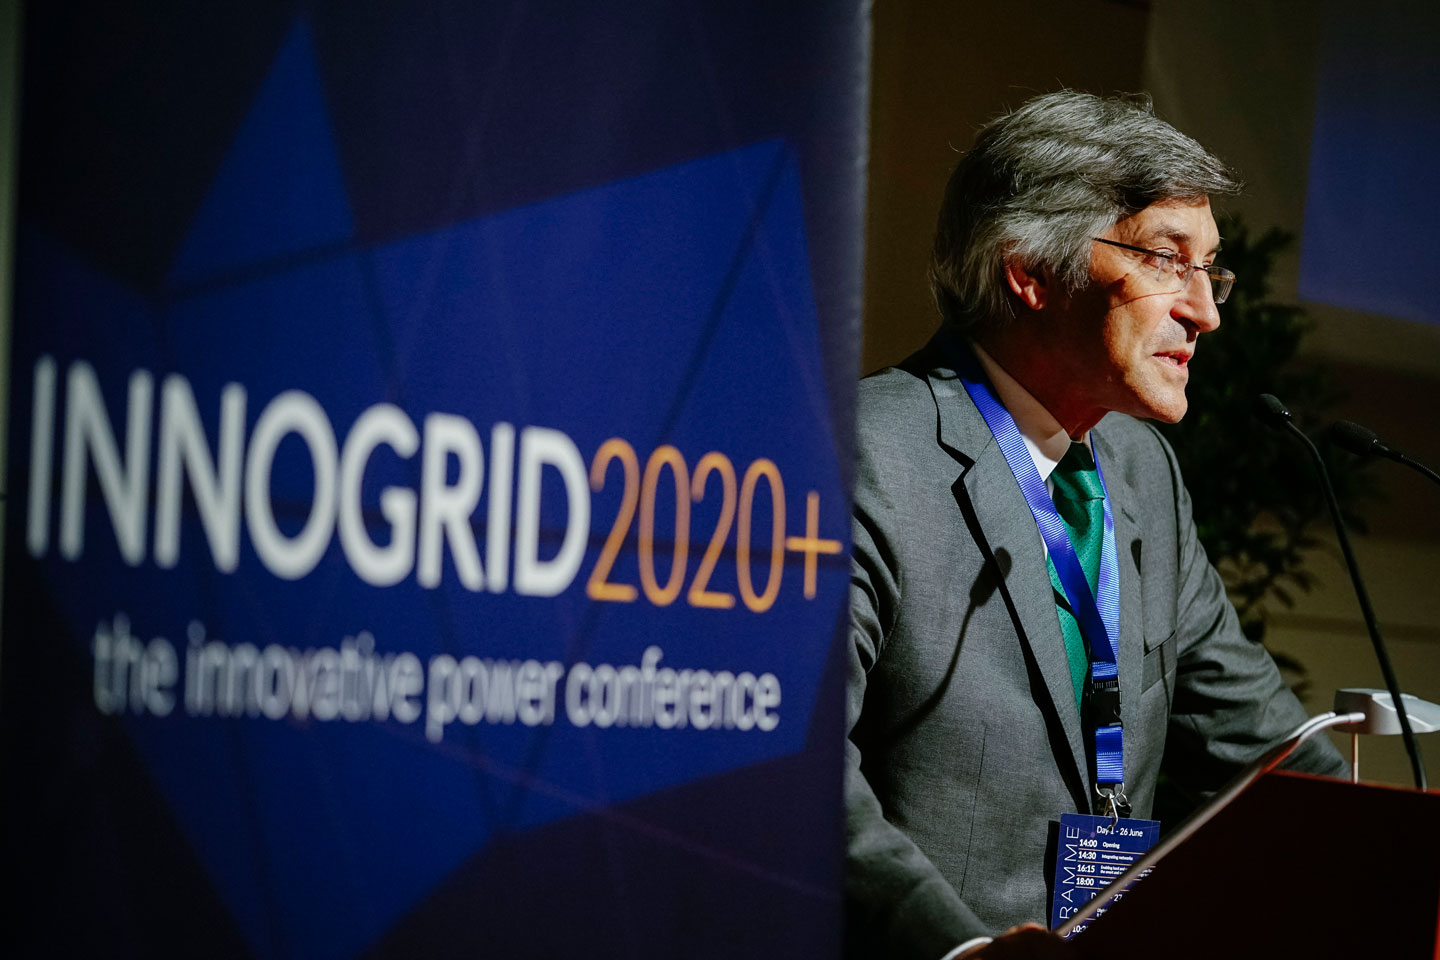 Integrid was presented at InnoGrid 2020+